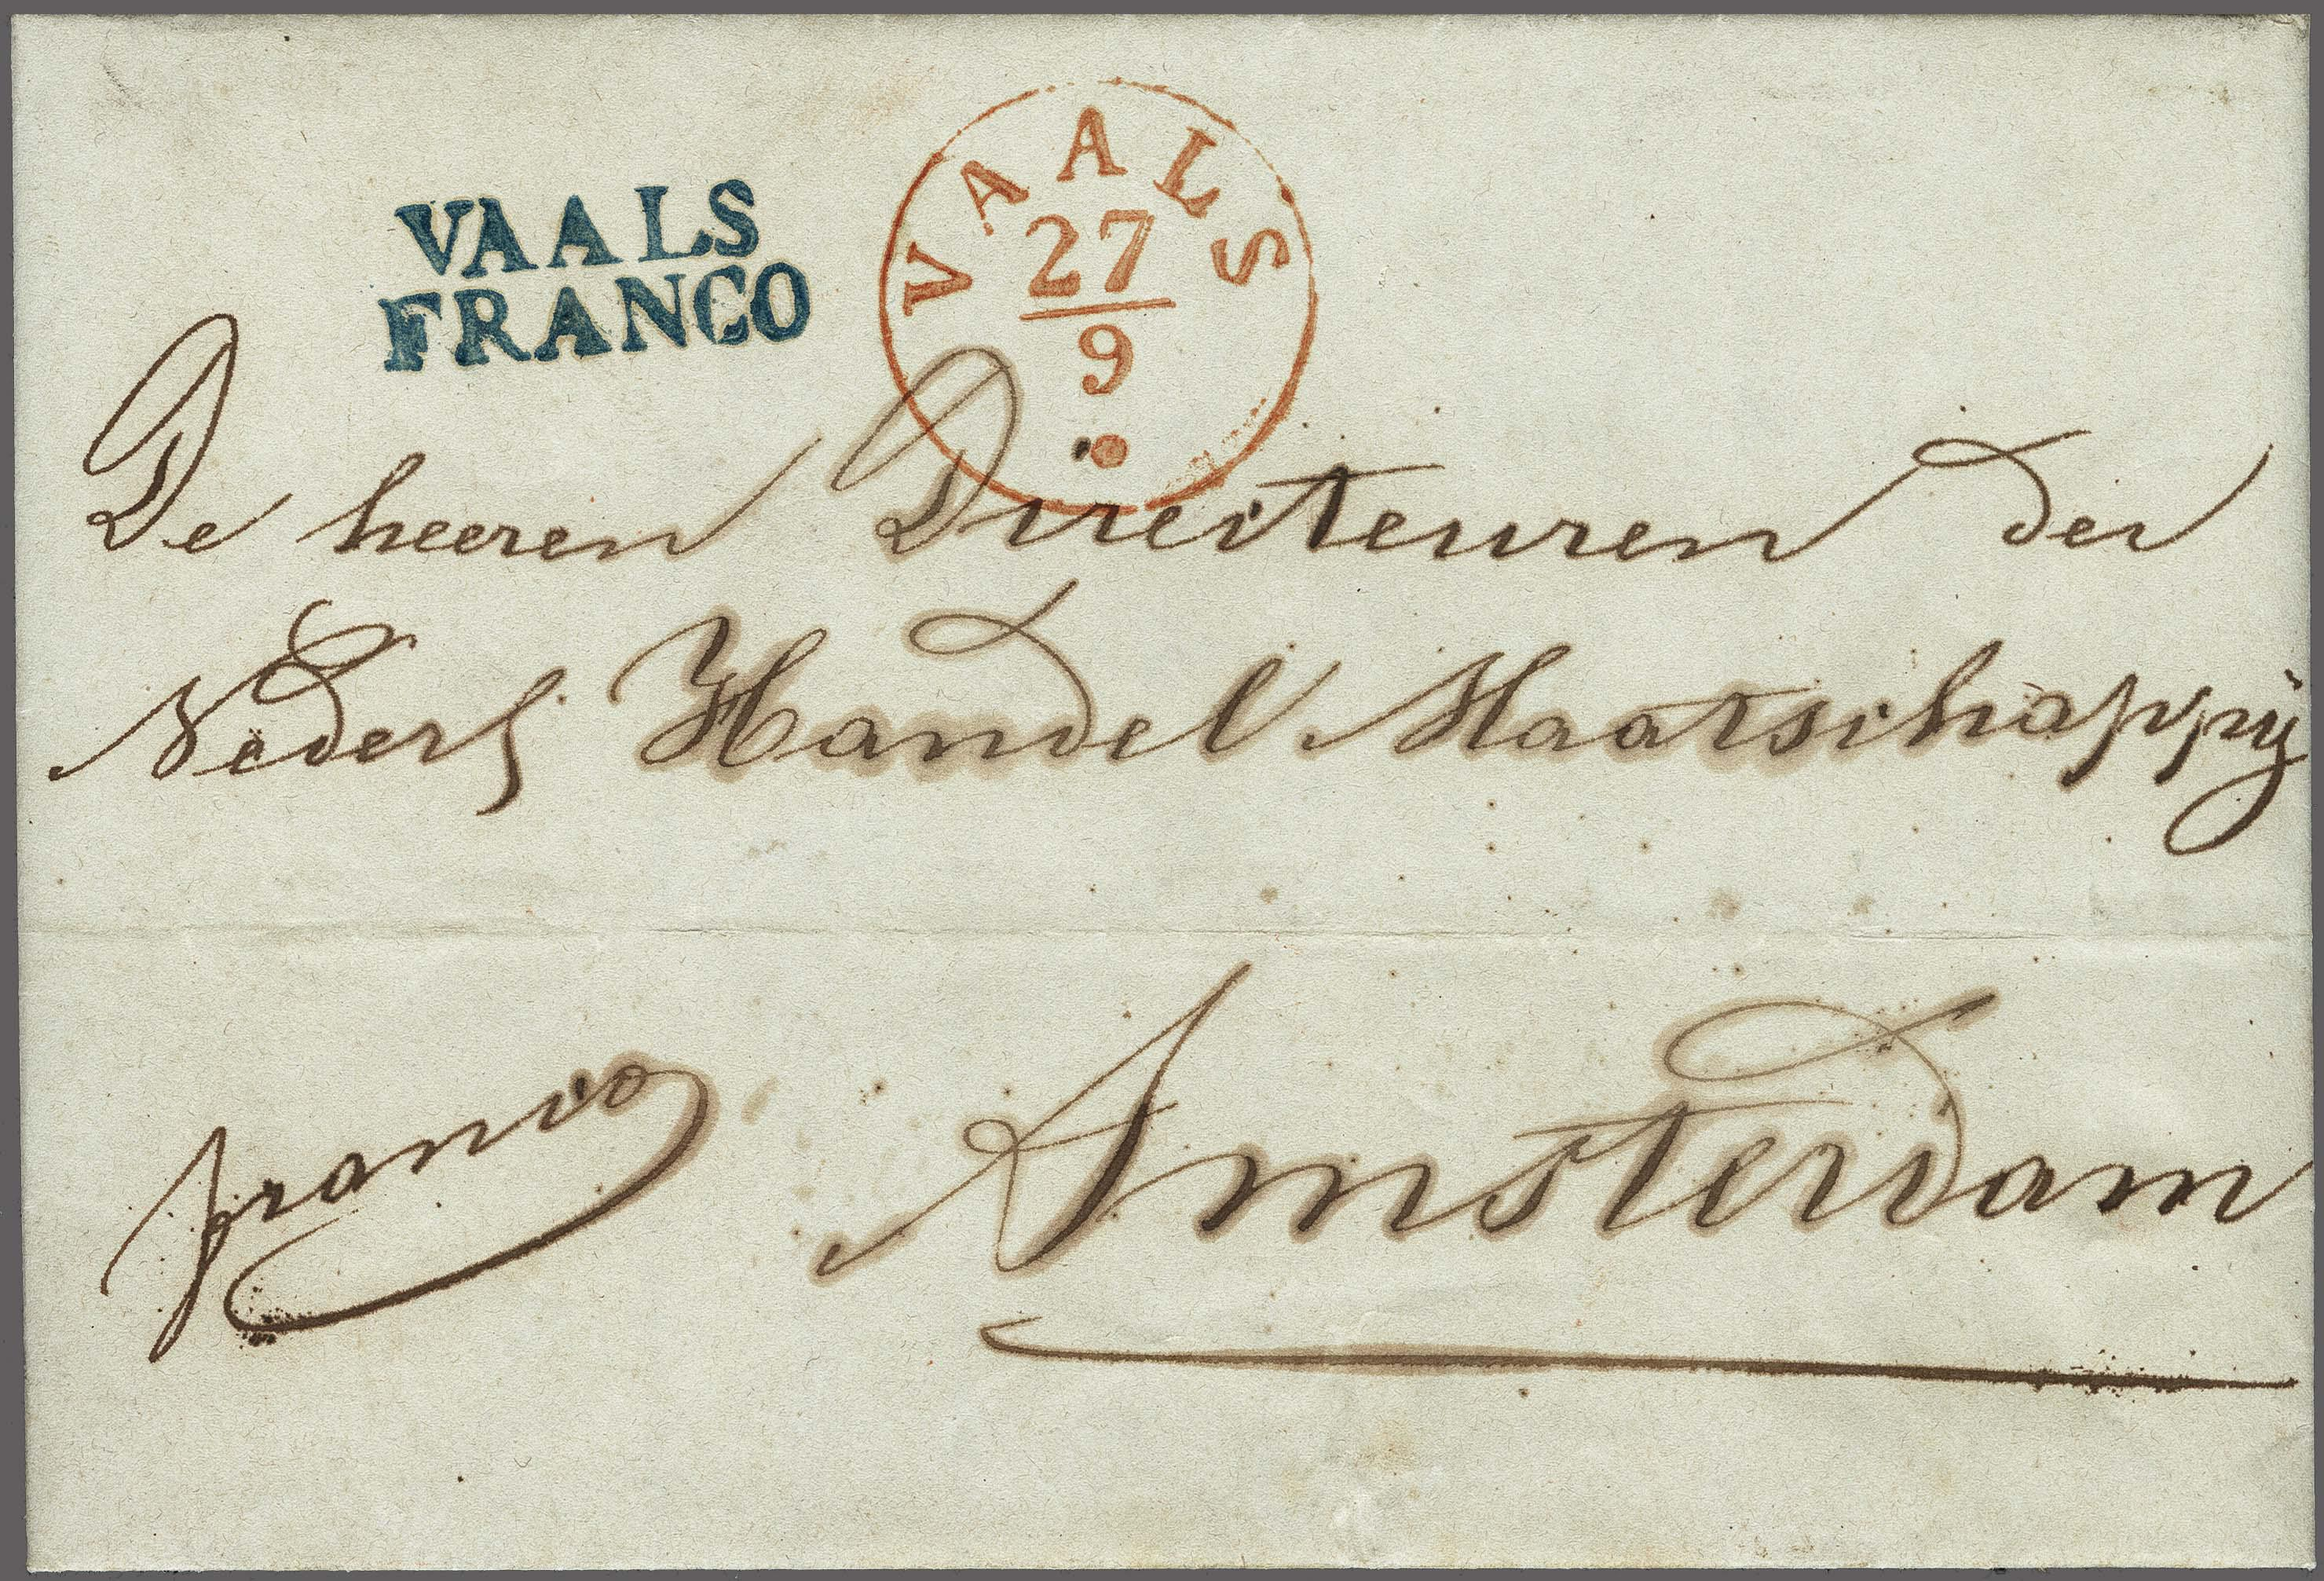 Lot 2466 - Netherlands and former colonies Netherlands -  Corinphila Veilingen Auction 250-253 - Day 3 - Netherlands and former colonies - Single lots & Picture postcards